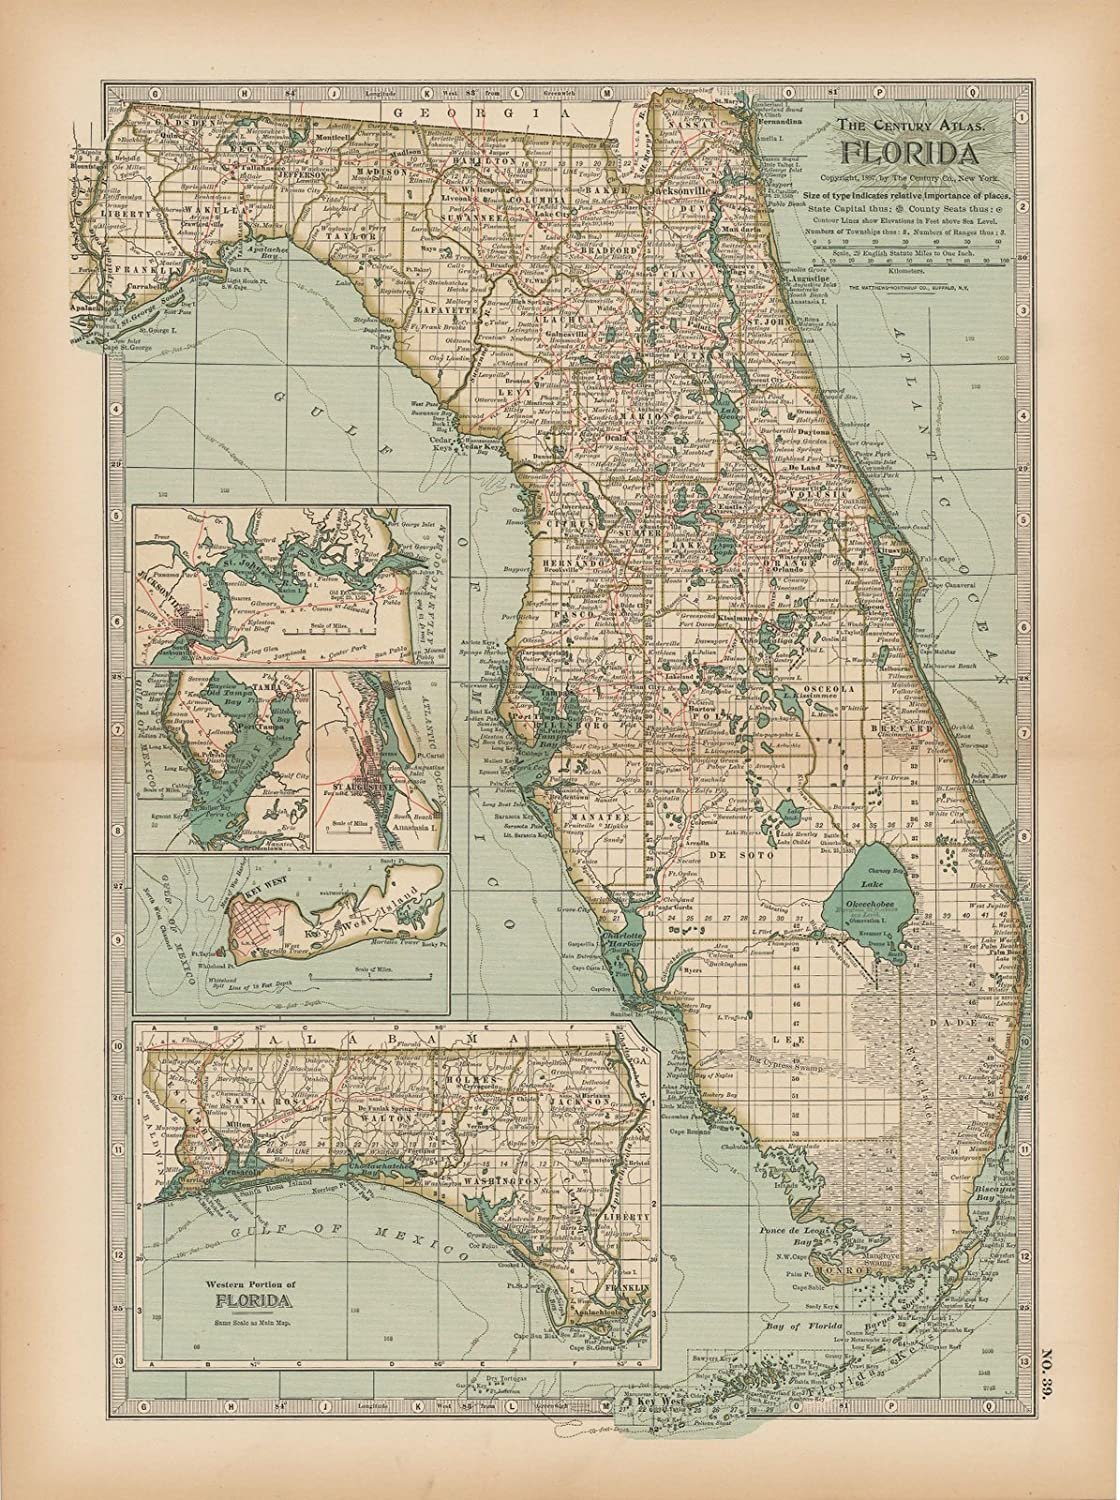 rare map oversize map print fine reproduction 1896 large map fine art print Old map of the Bahamas